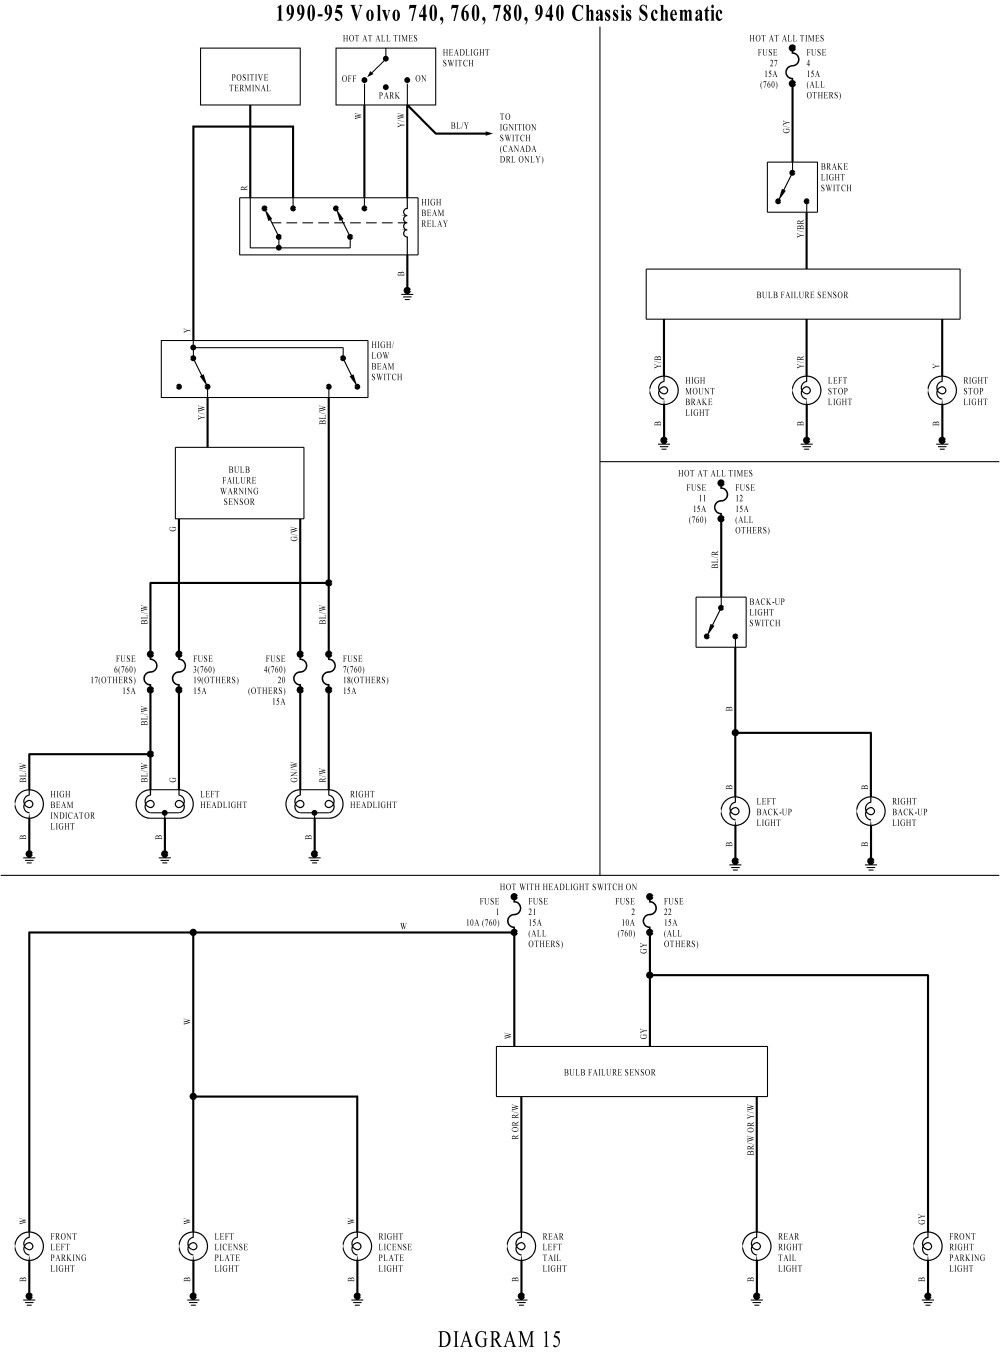 wiring diagram 1990 volvo wagon wiring diagram inside volvo 360 wiring diagram [ 1000 x 1352 Pixel ]